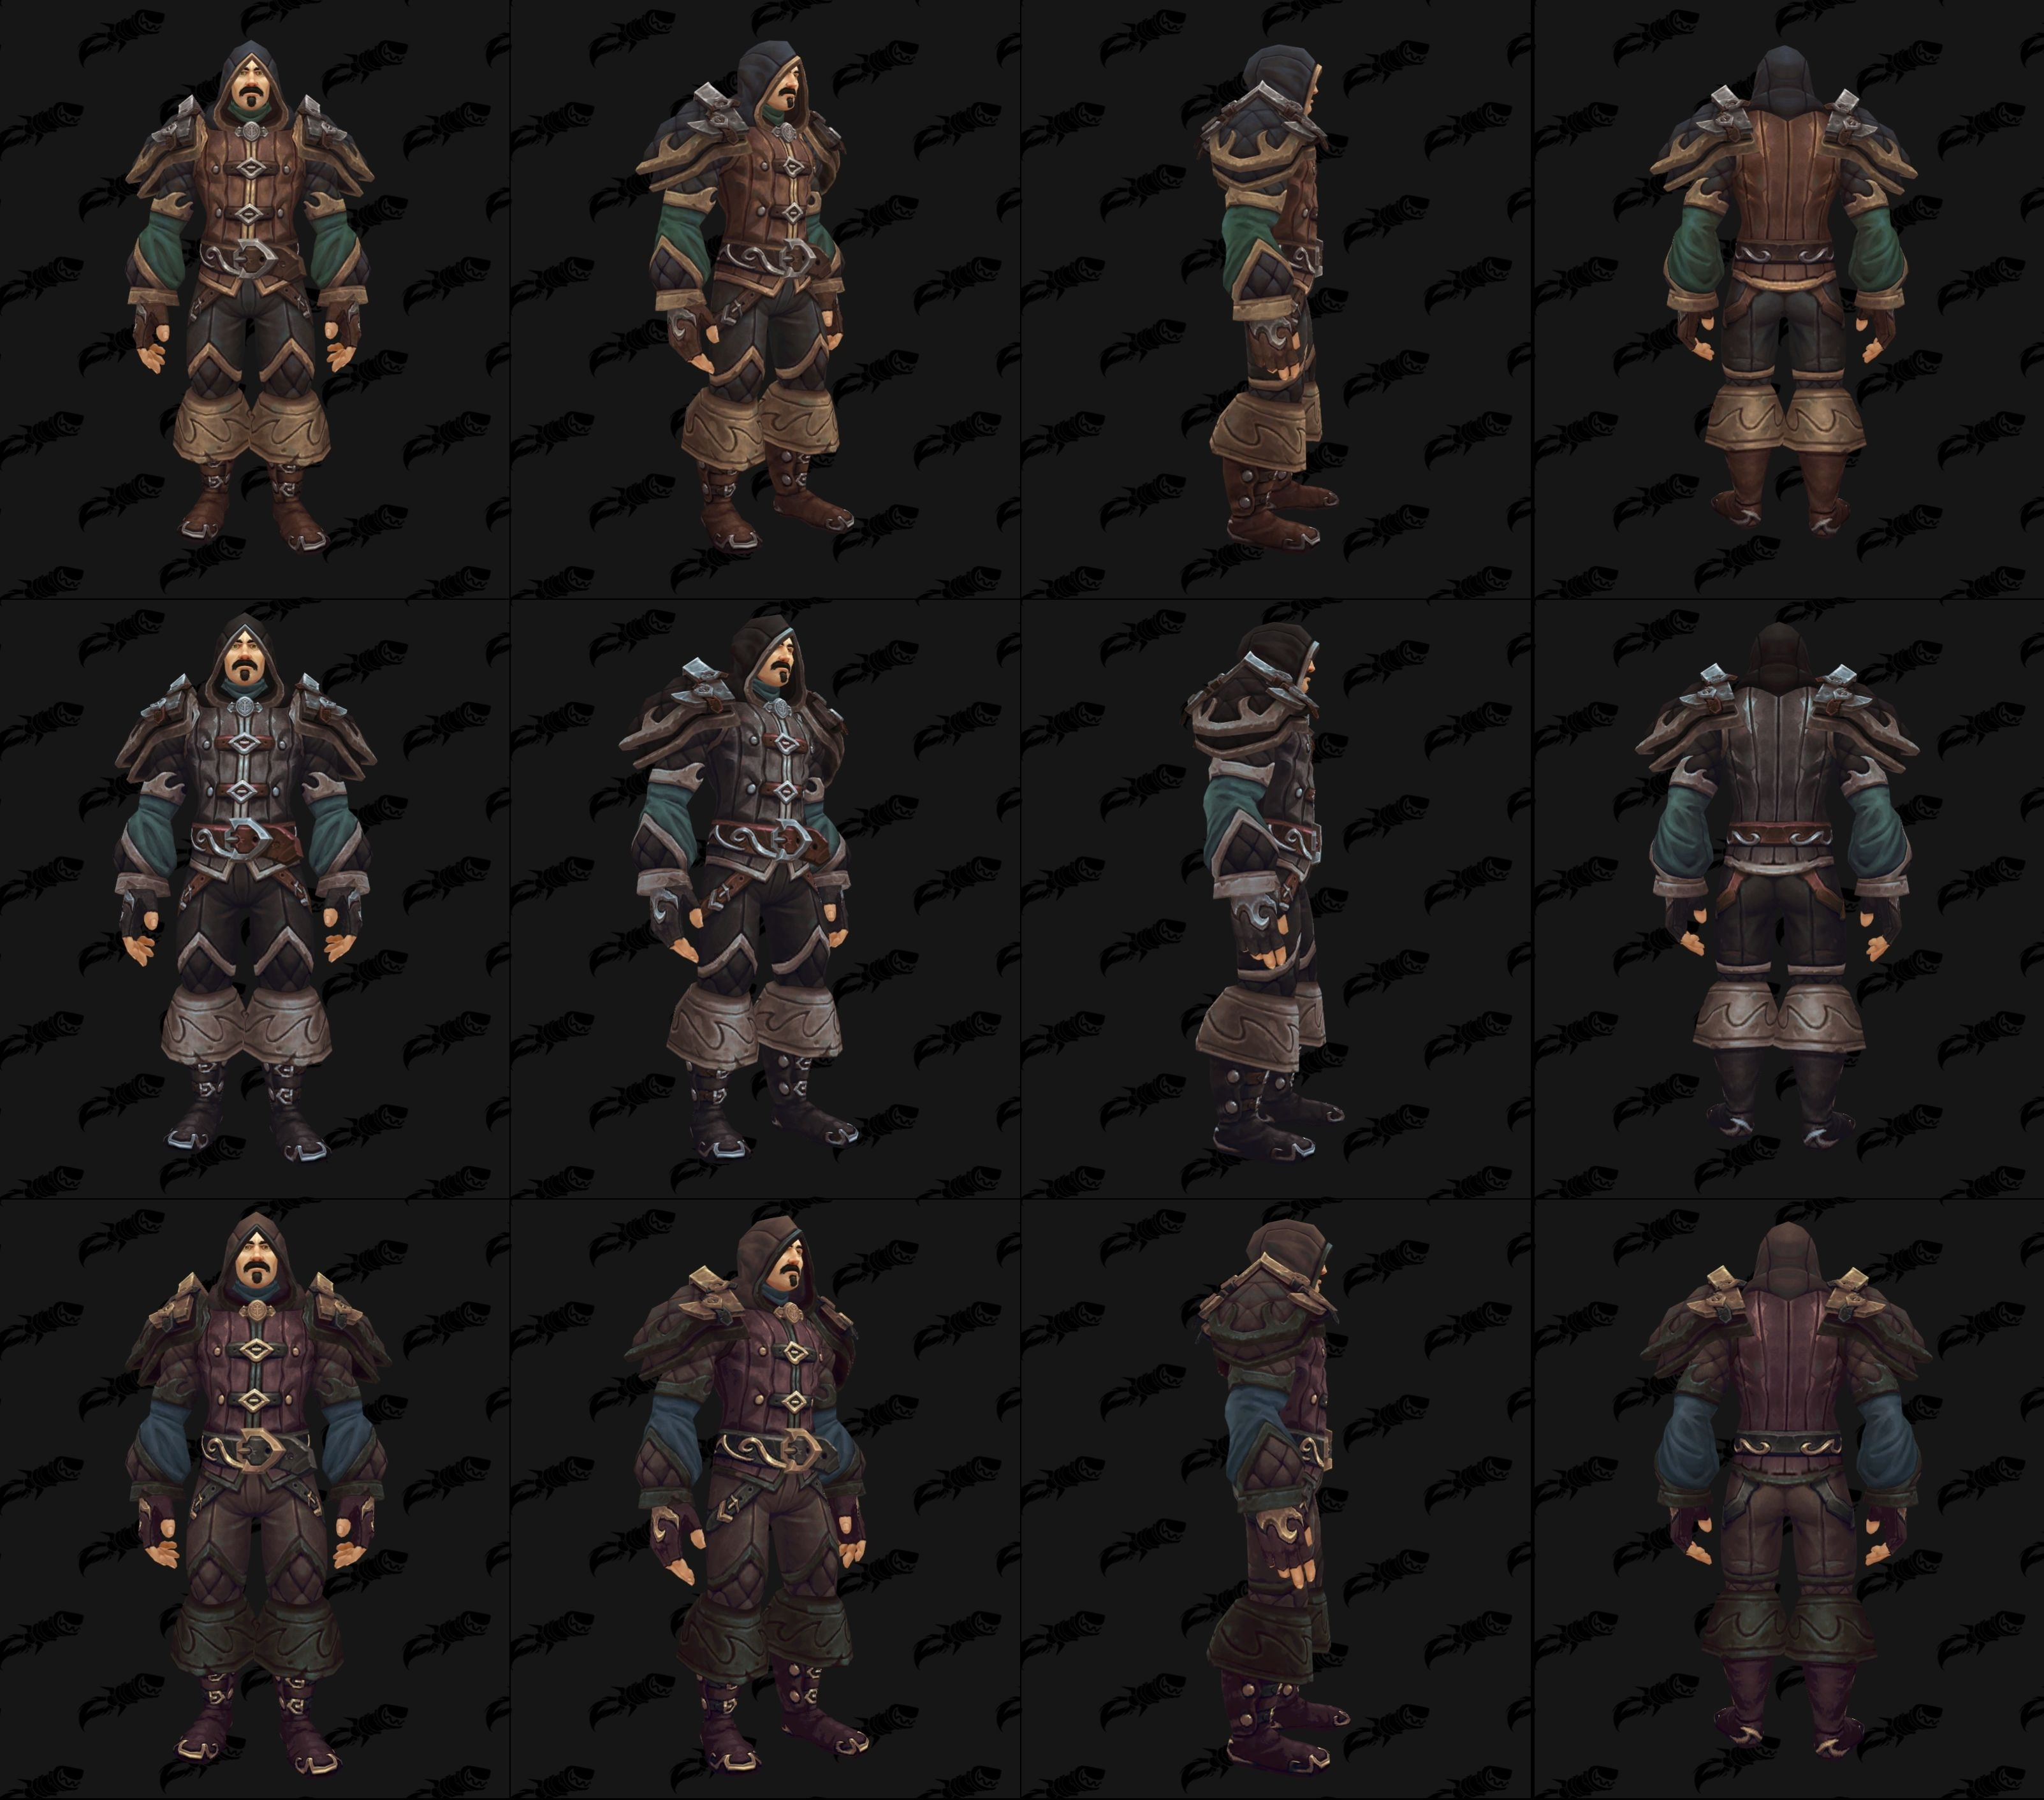 The Kul Tiran Levelling Leather Gear Actually Looks Like Something A Rogue Would Wear